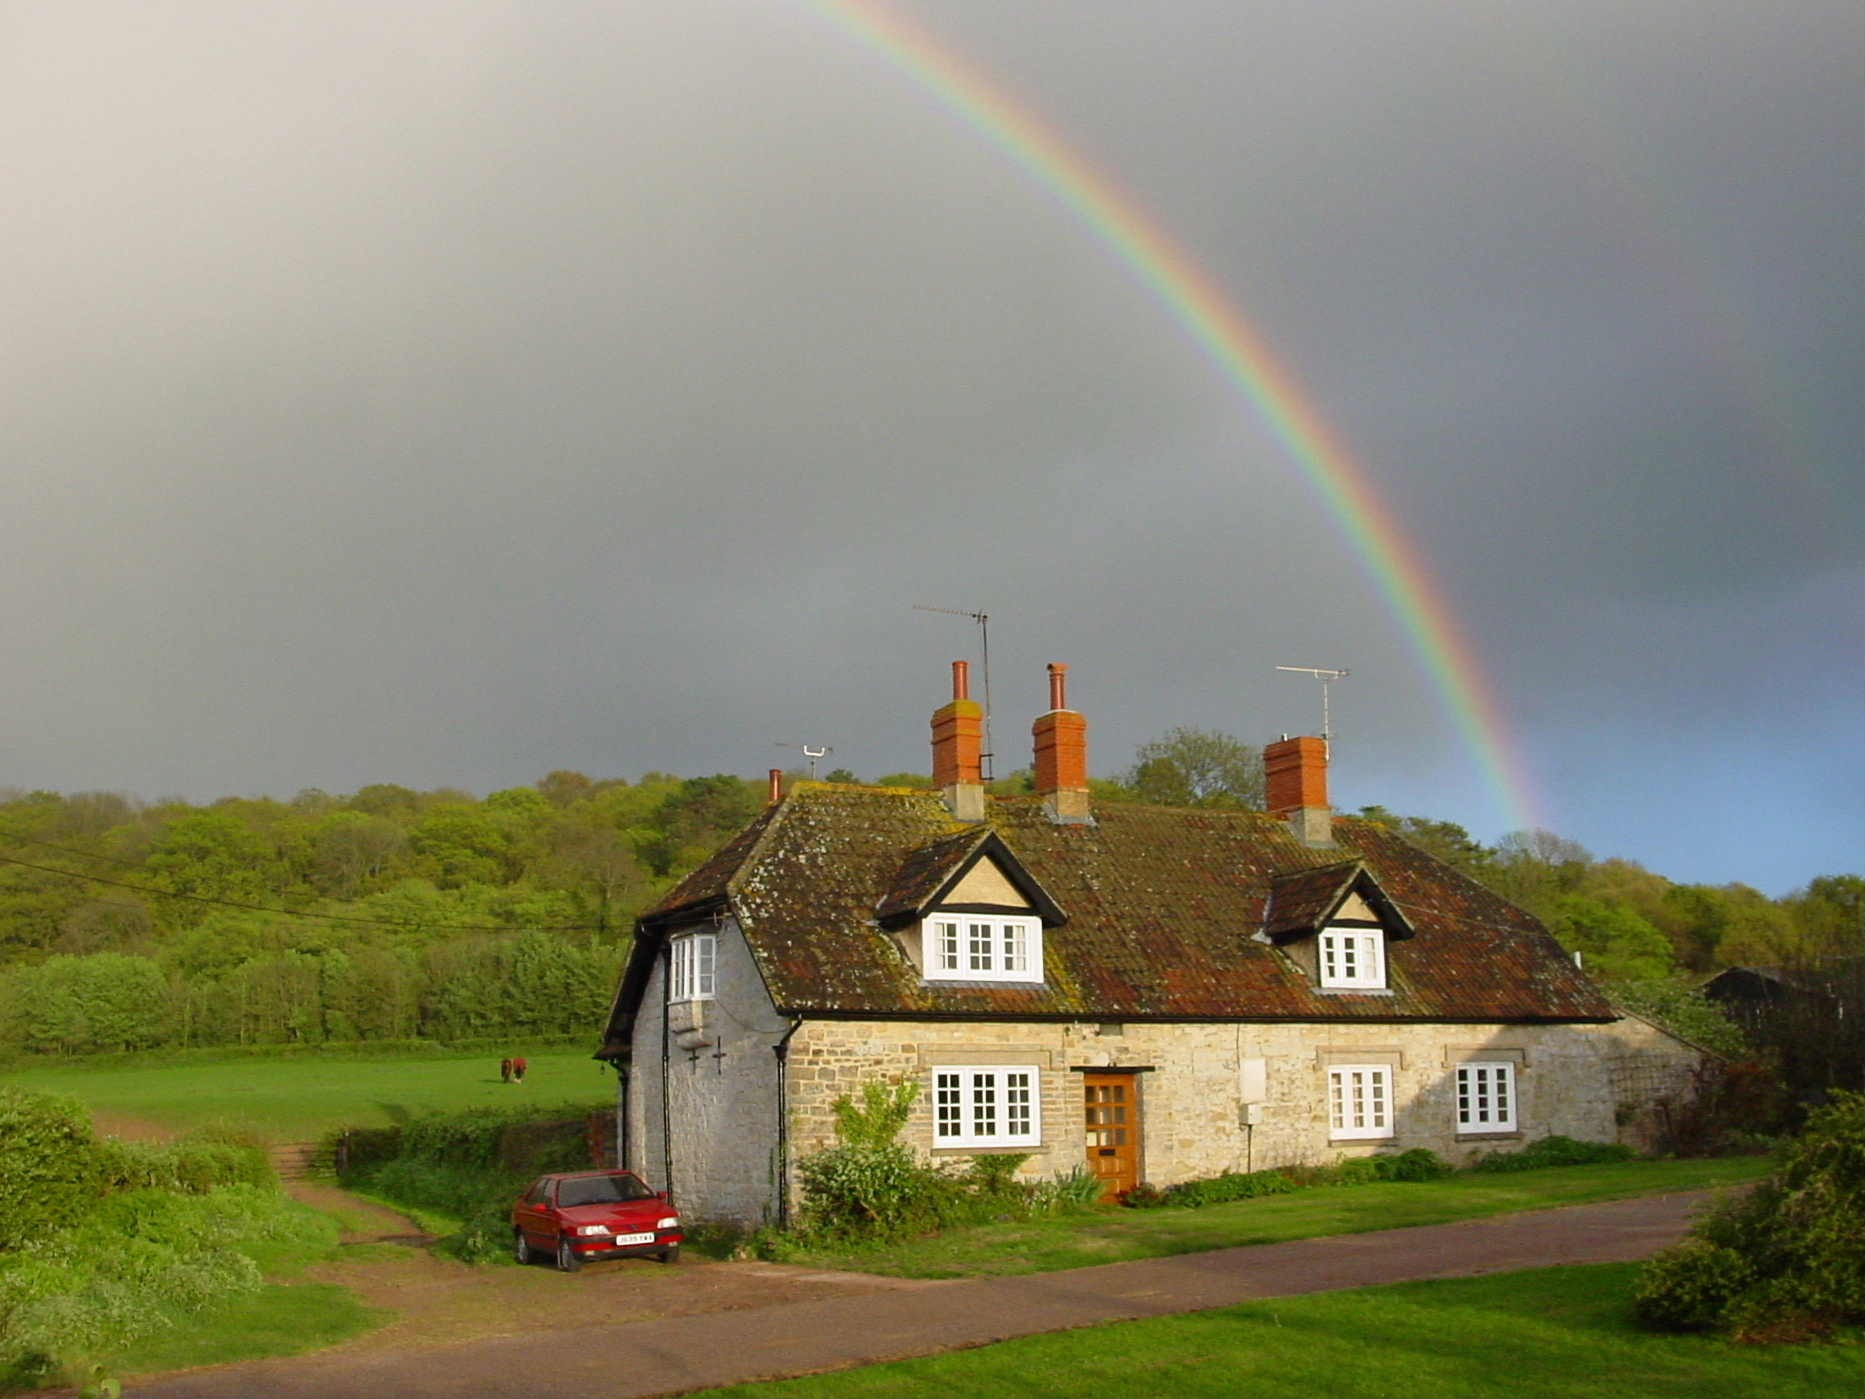 Farmhouse with rainbow